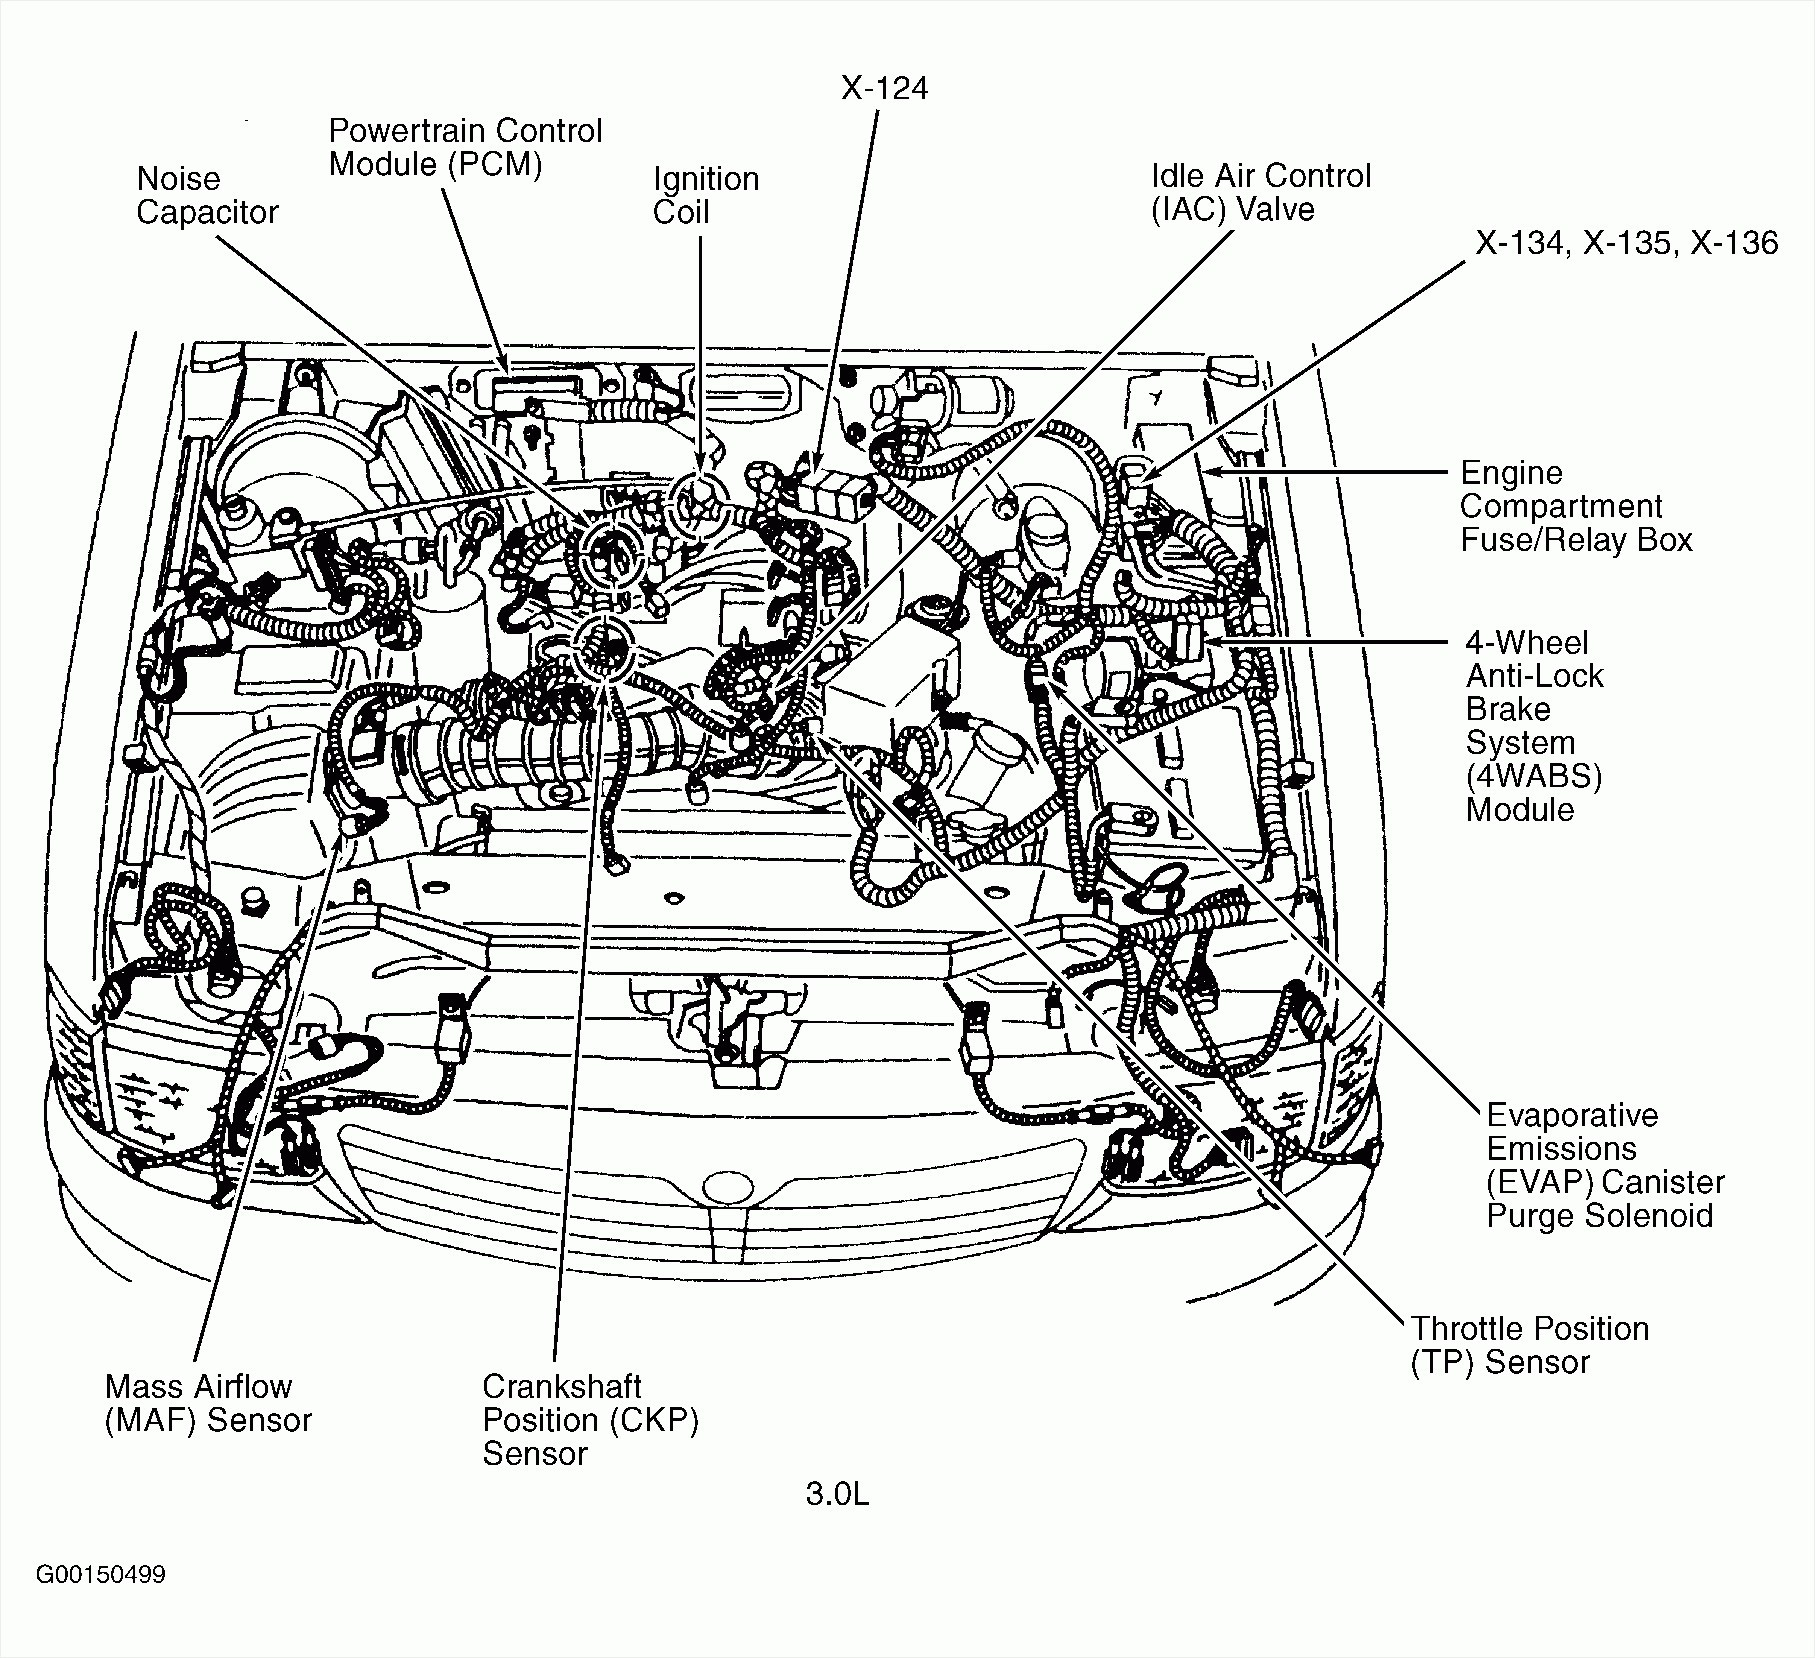 hight resolution of 99 pontiac sunfire engine diagram wiring diagram schema 2000 pontiac sunfire 2 2 liter engine diagram